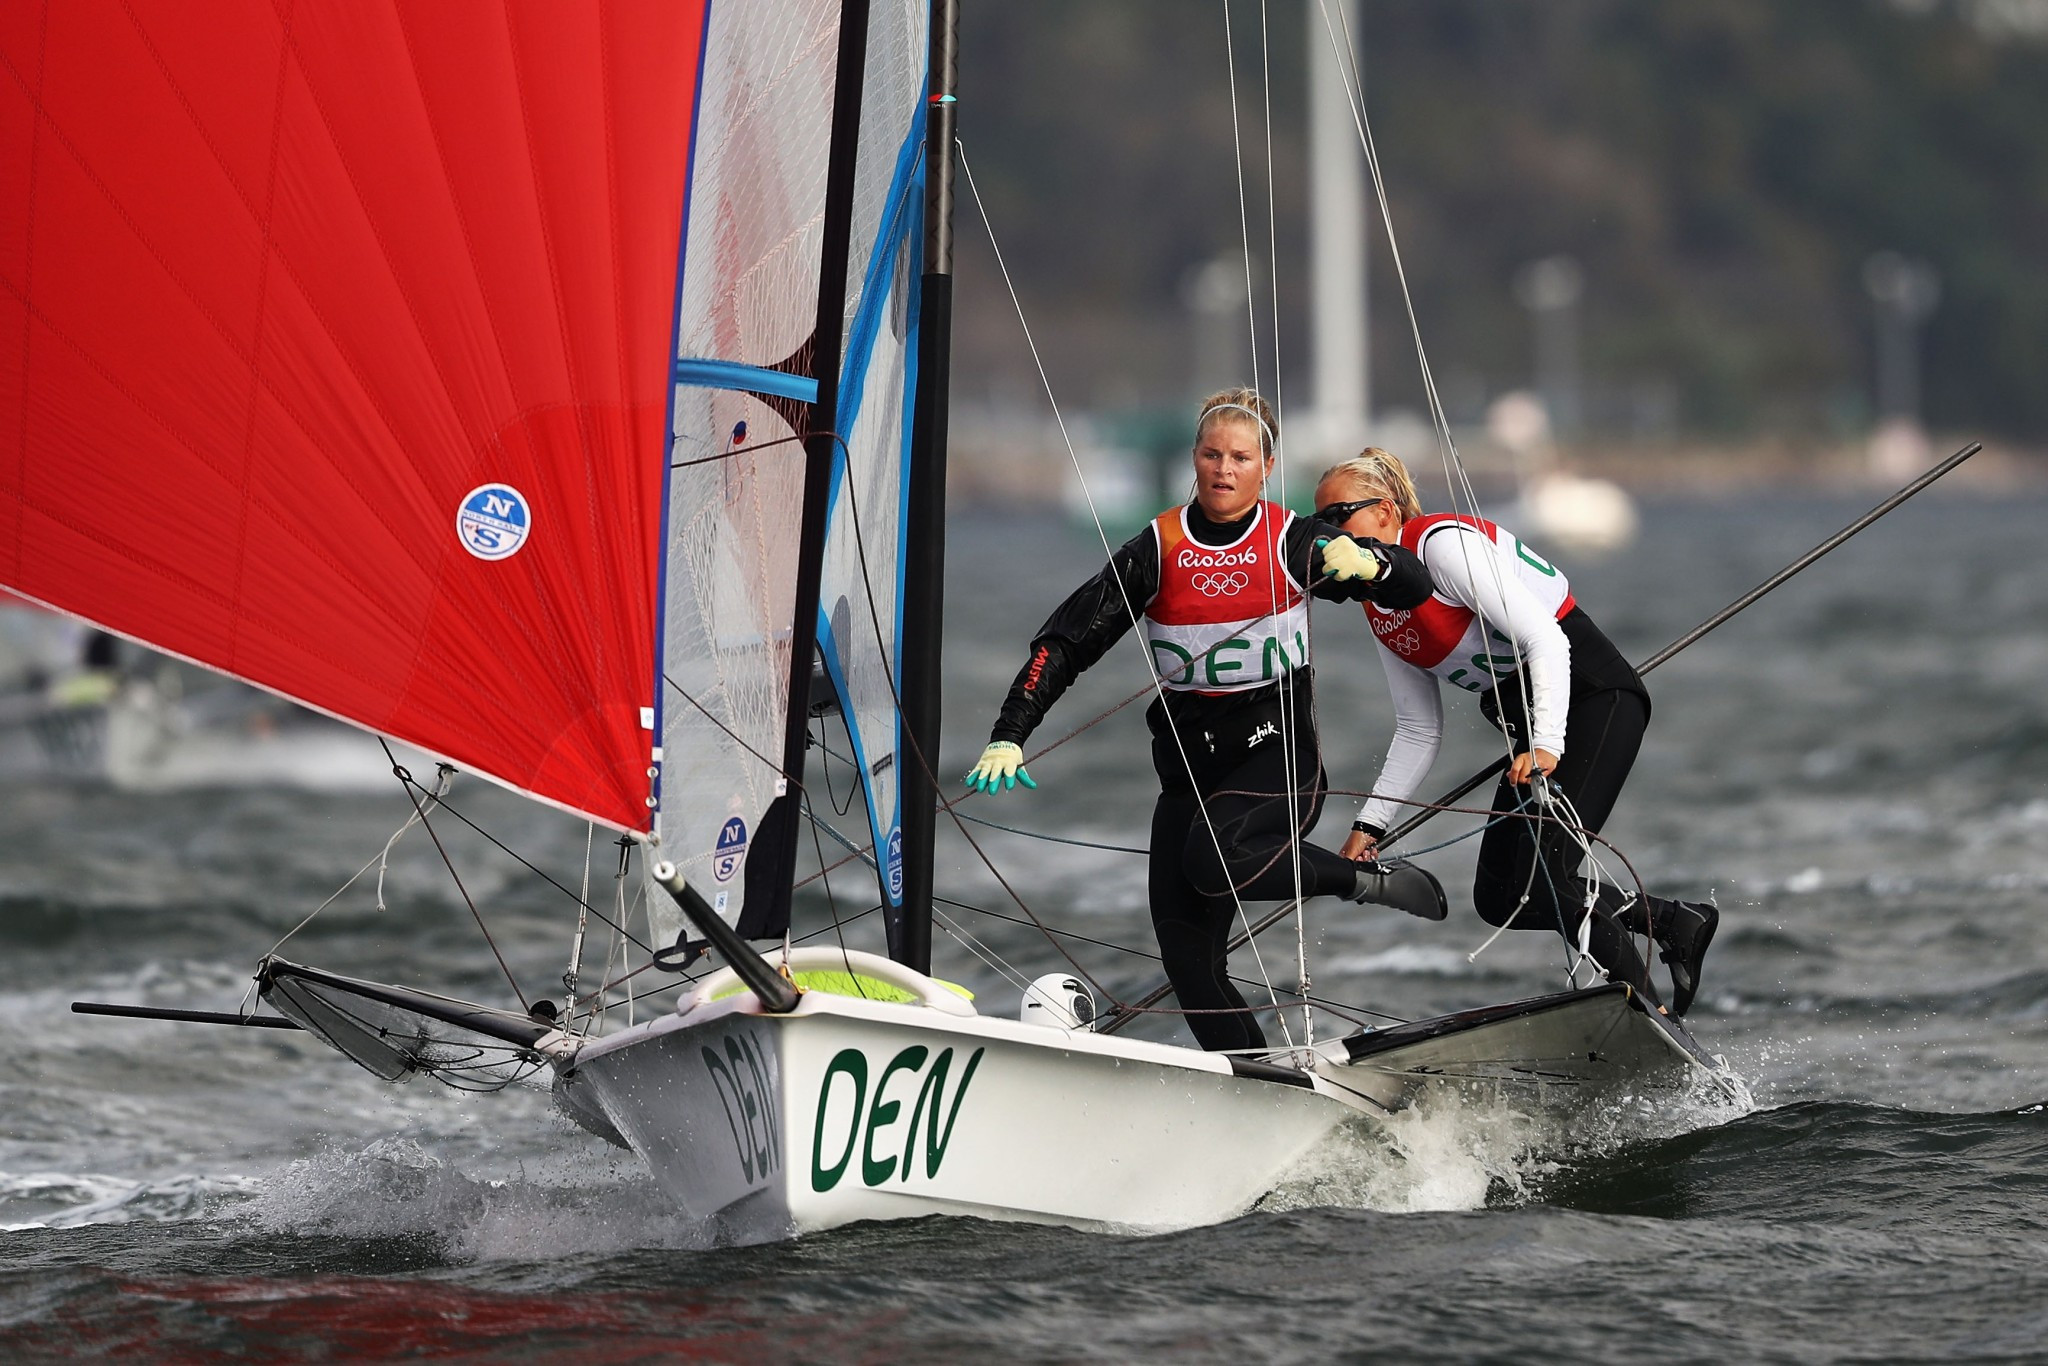 Danish duo continue to lead at home World Sailing Championships test event